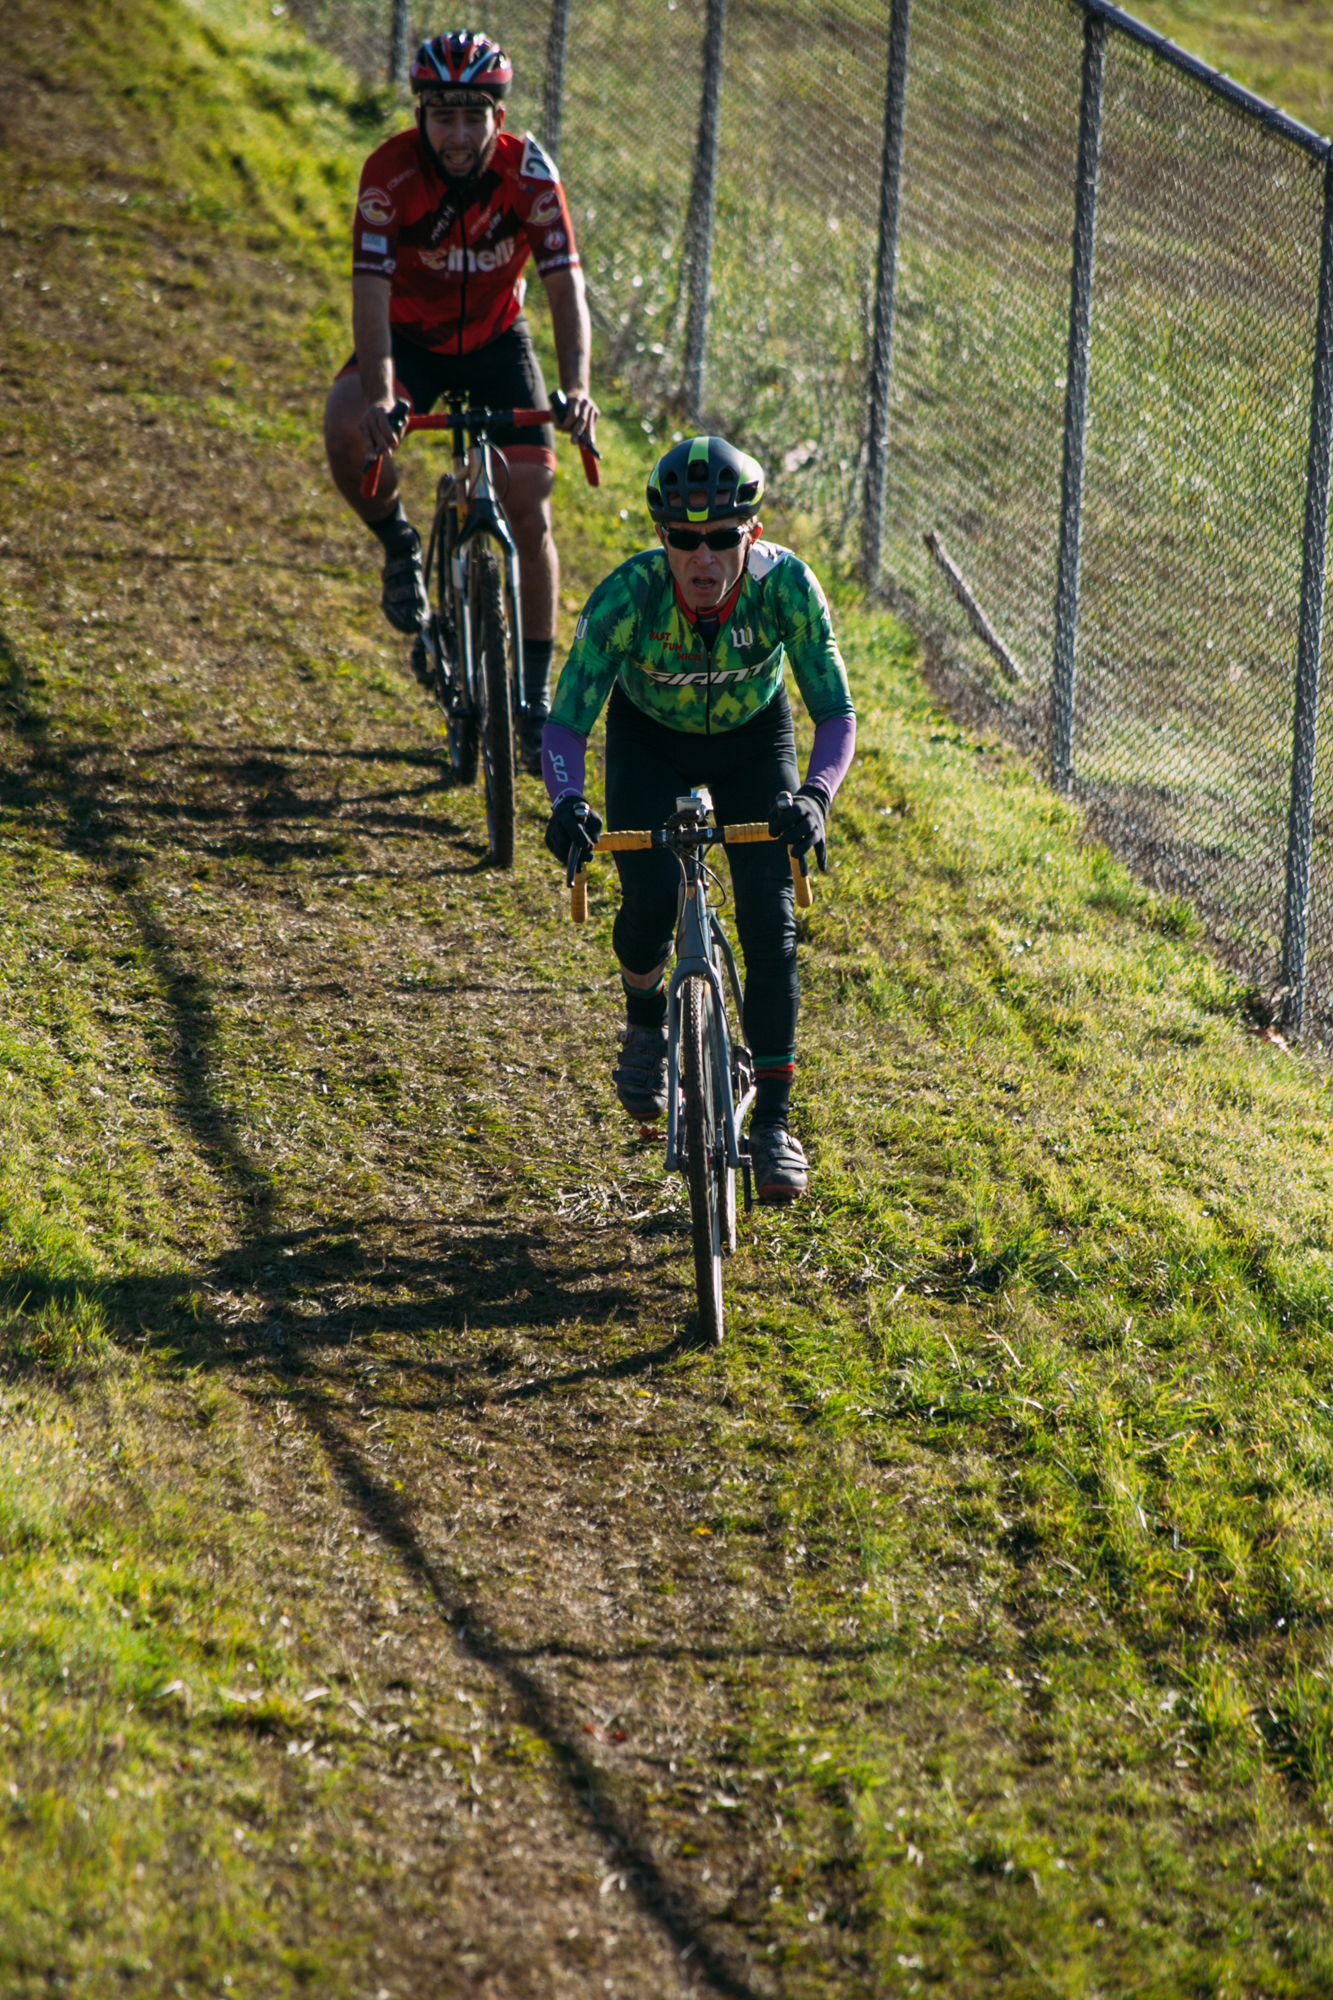 Cyclocross18_CCCX_RainierHS-4-mettlecycling.jpg